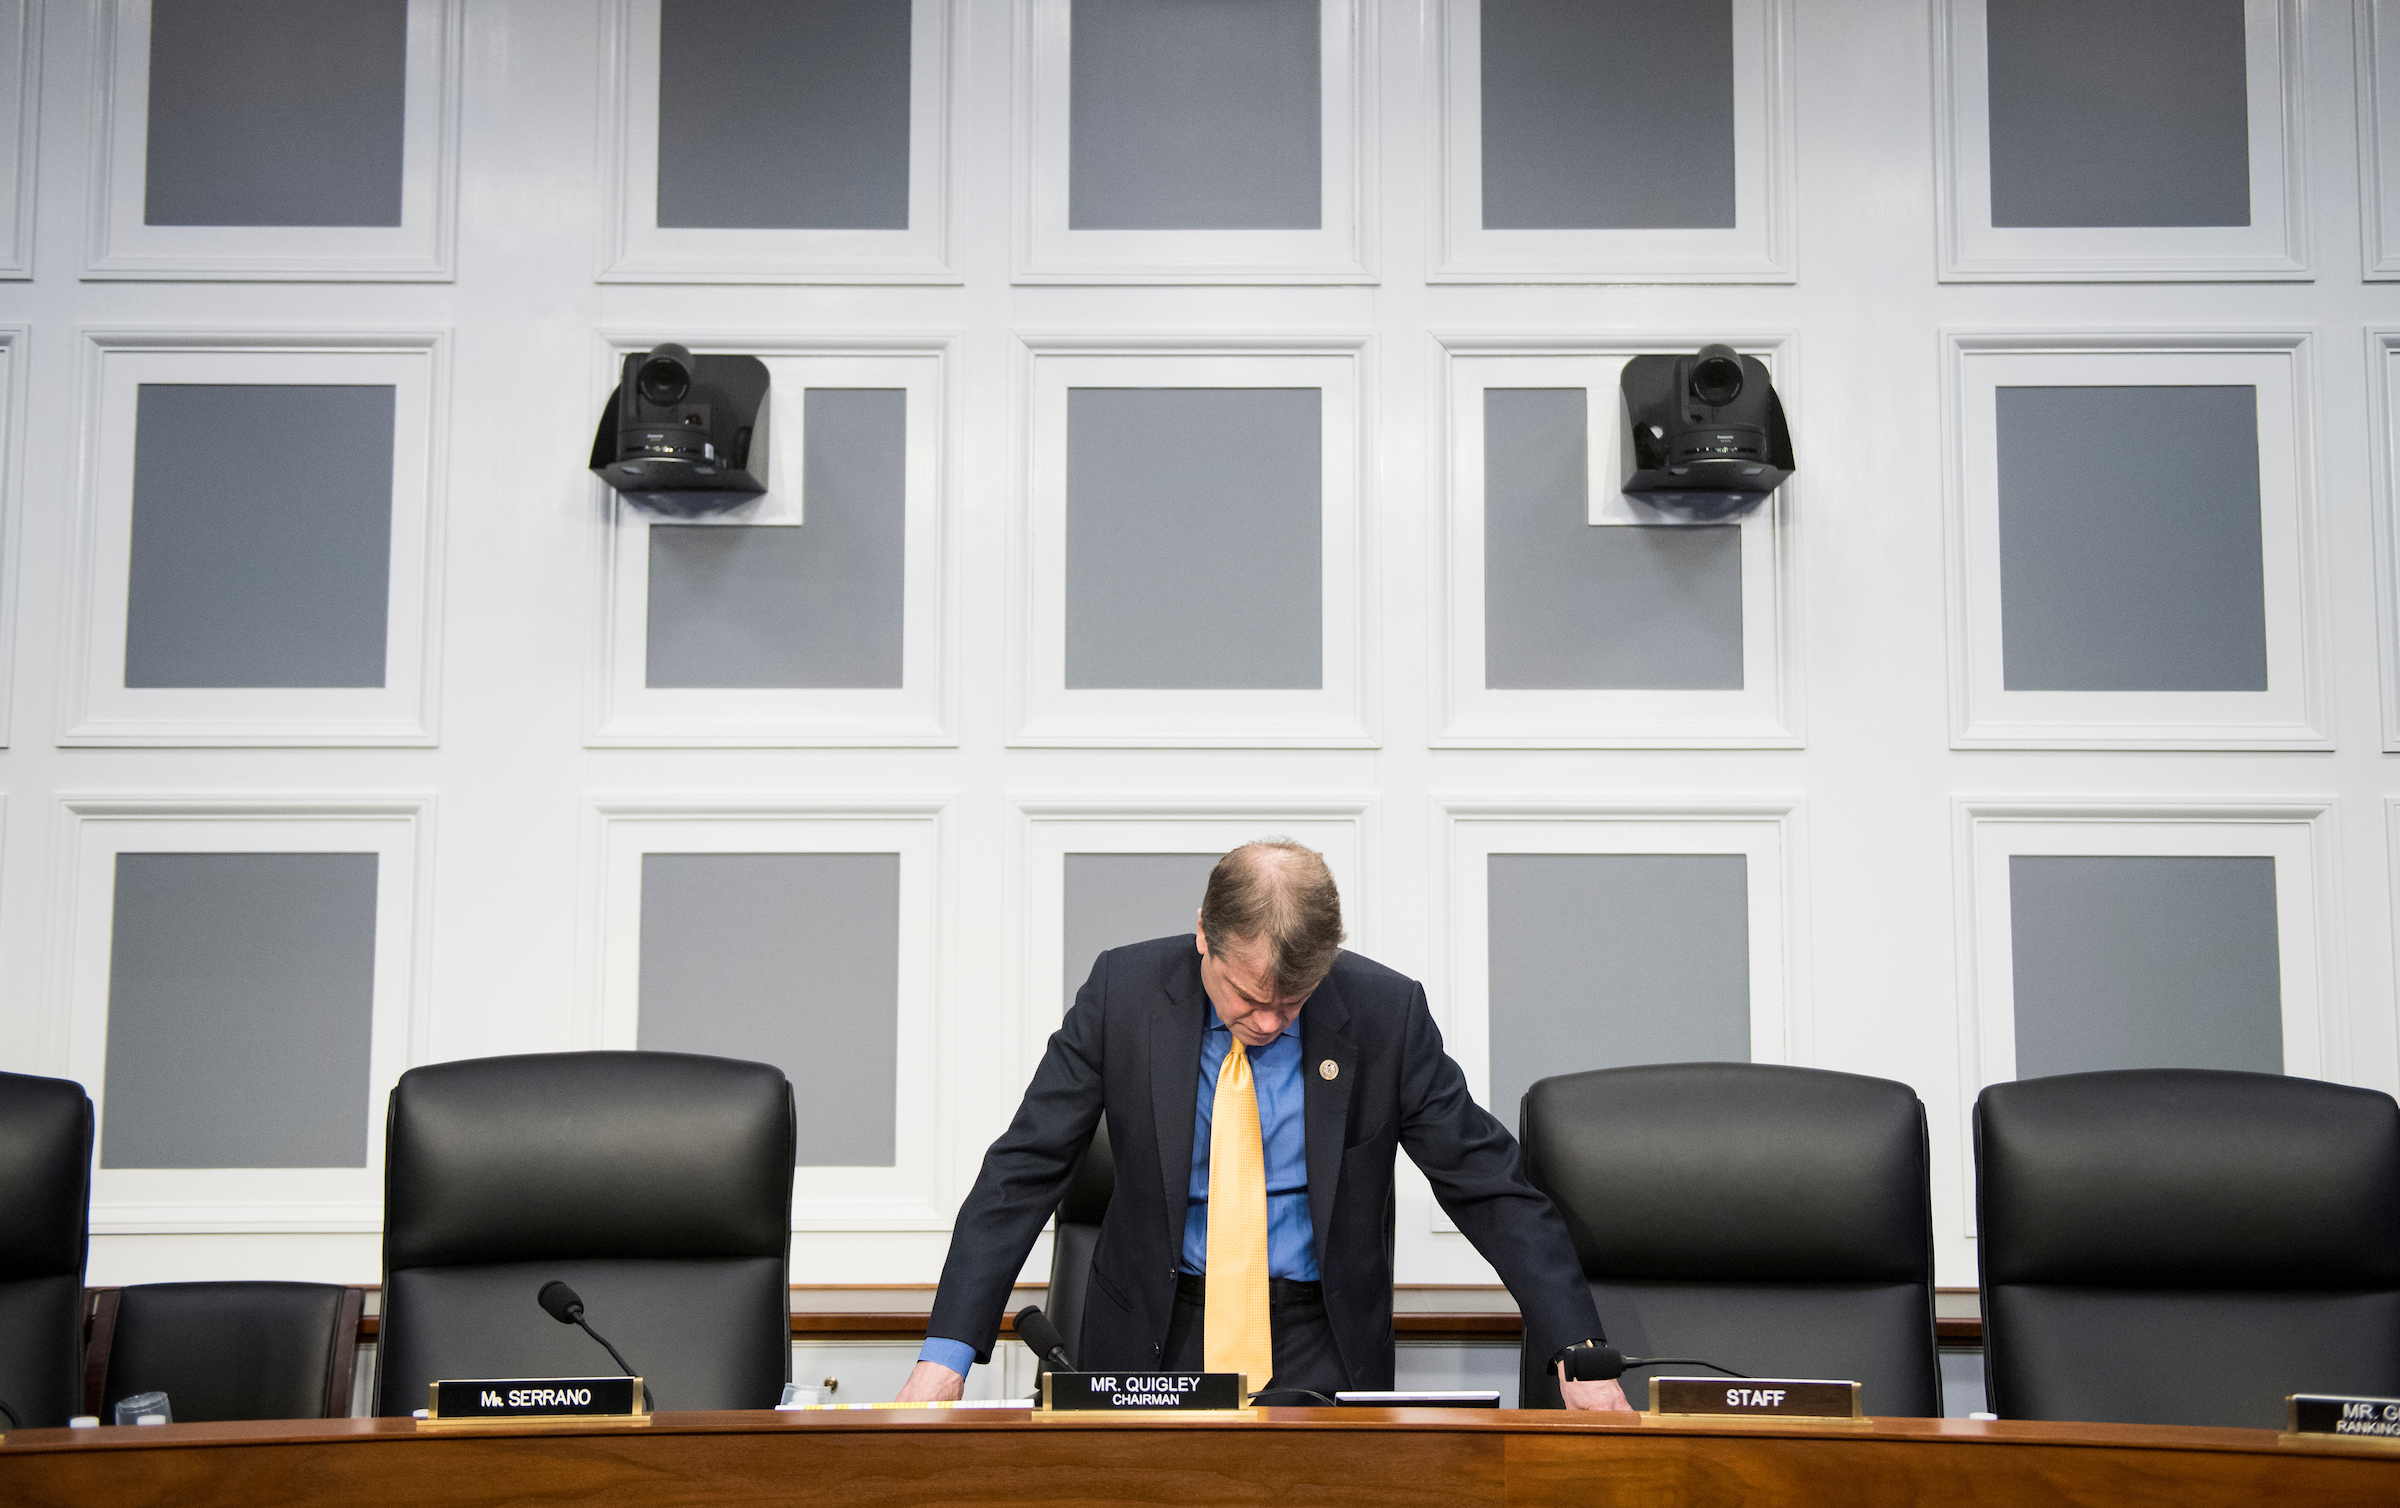 "UNITED STATES - MARCH 13: Rep. Mike Quigley, D-Ill., prepares to chair the House Appropriations Subcommittee on Financial Services and General Government Subcommittee hearing on ""GSA (General Services Administration) Oversight Hearing"" on Wednesday, March 13, 2019. GSA Administrator Emily Murphy testified during the hearing. (Photo By Bill Clark/CQ Roll Call)"